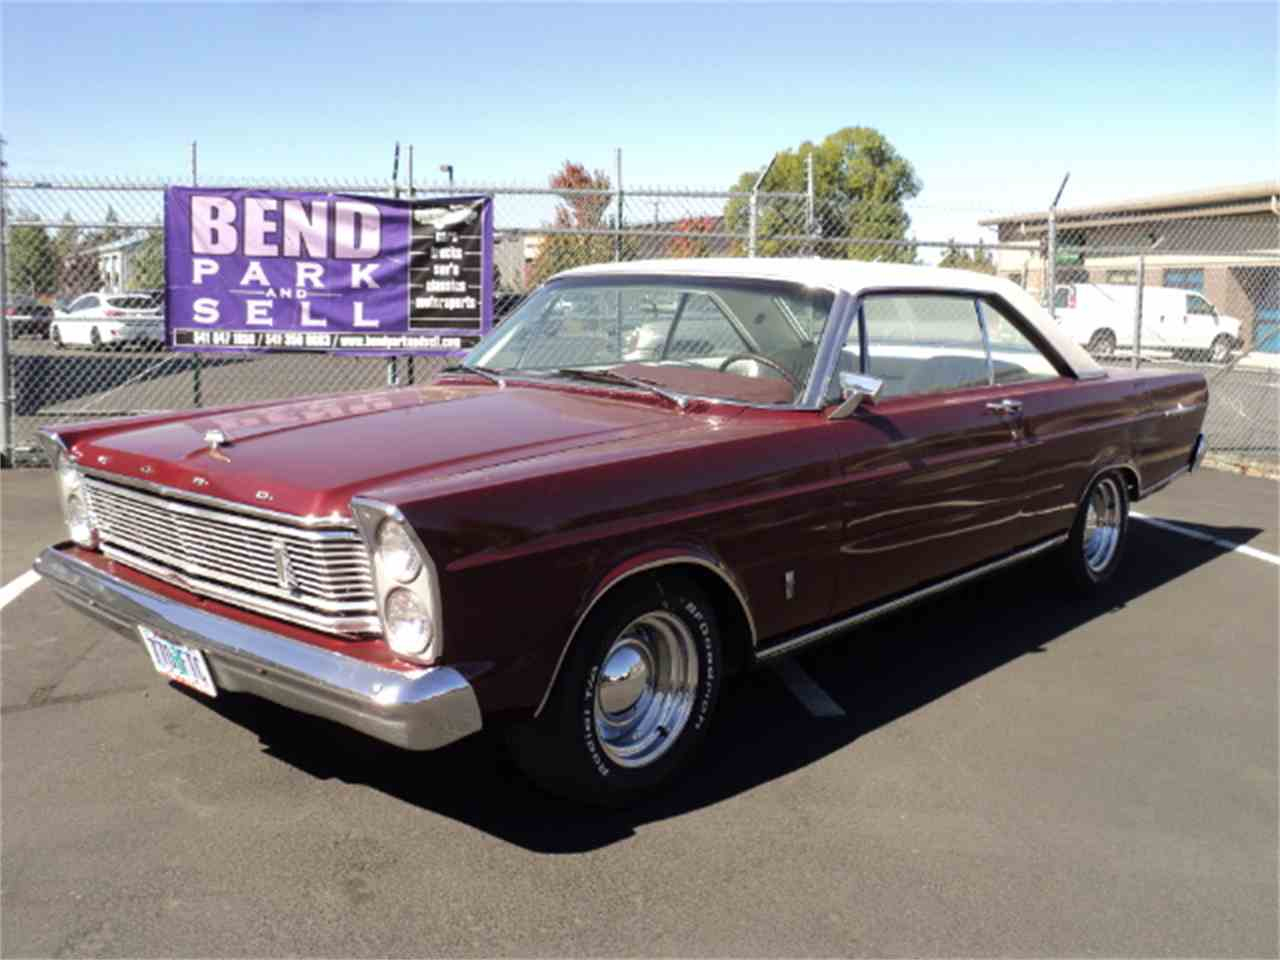 Classic Cars For Sale In Bend Oregon